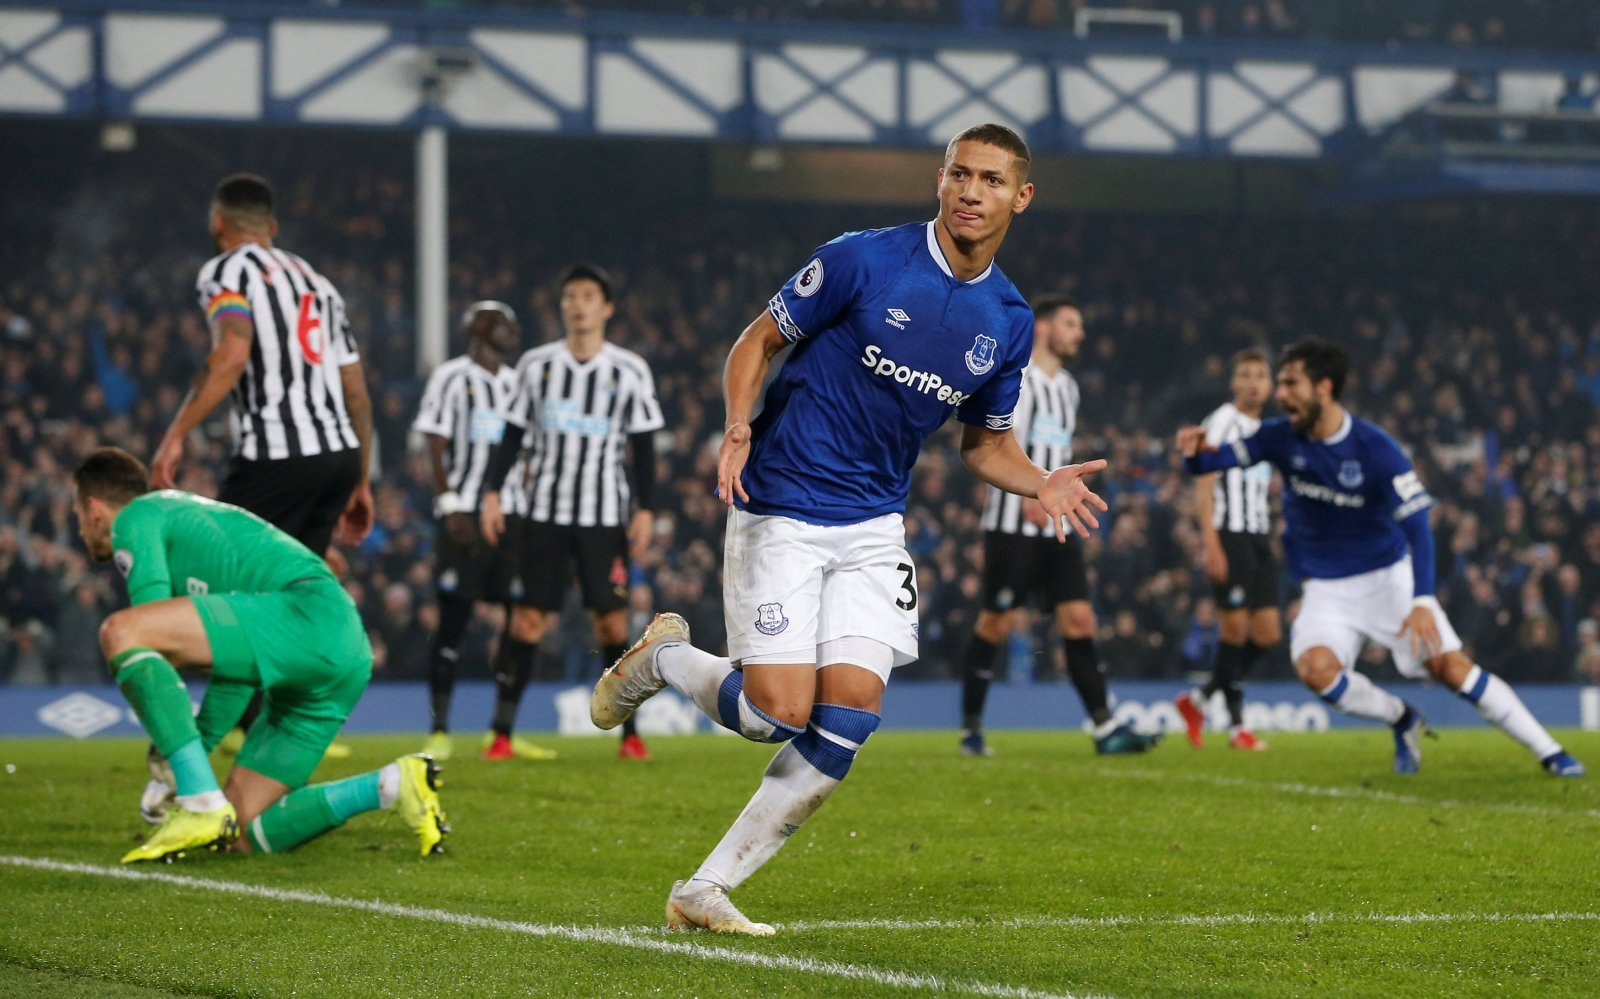 Everton's Richarlison celebrates scoring their first goal v Newcastle